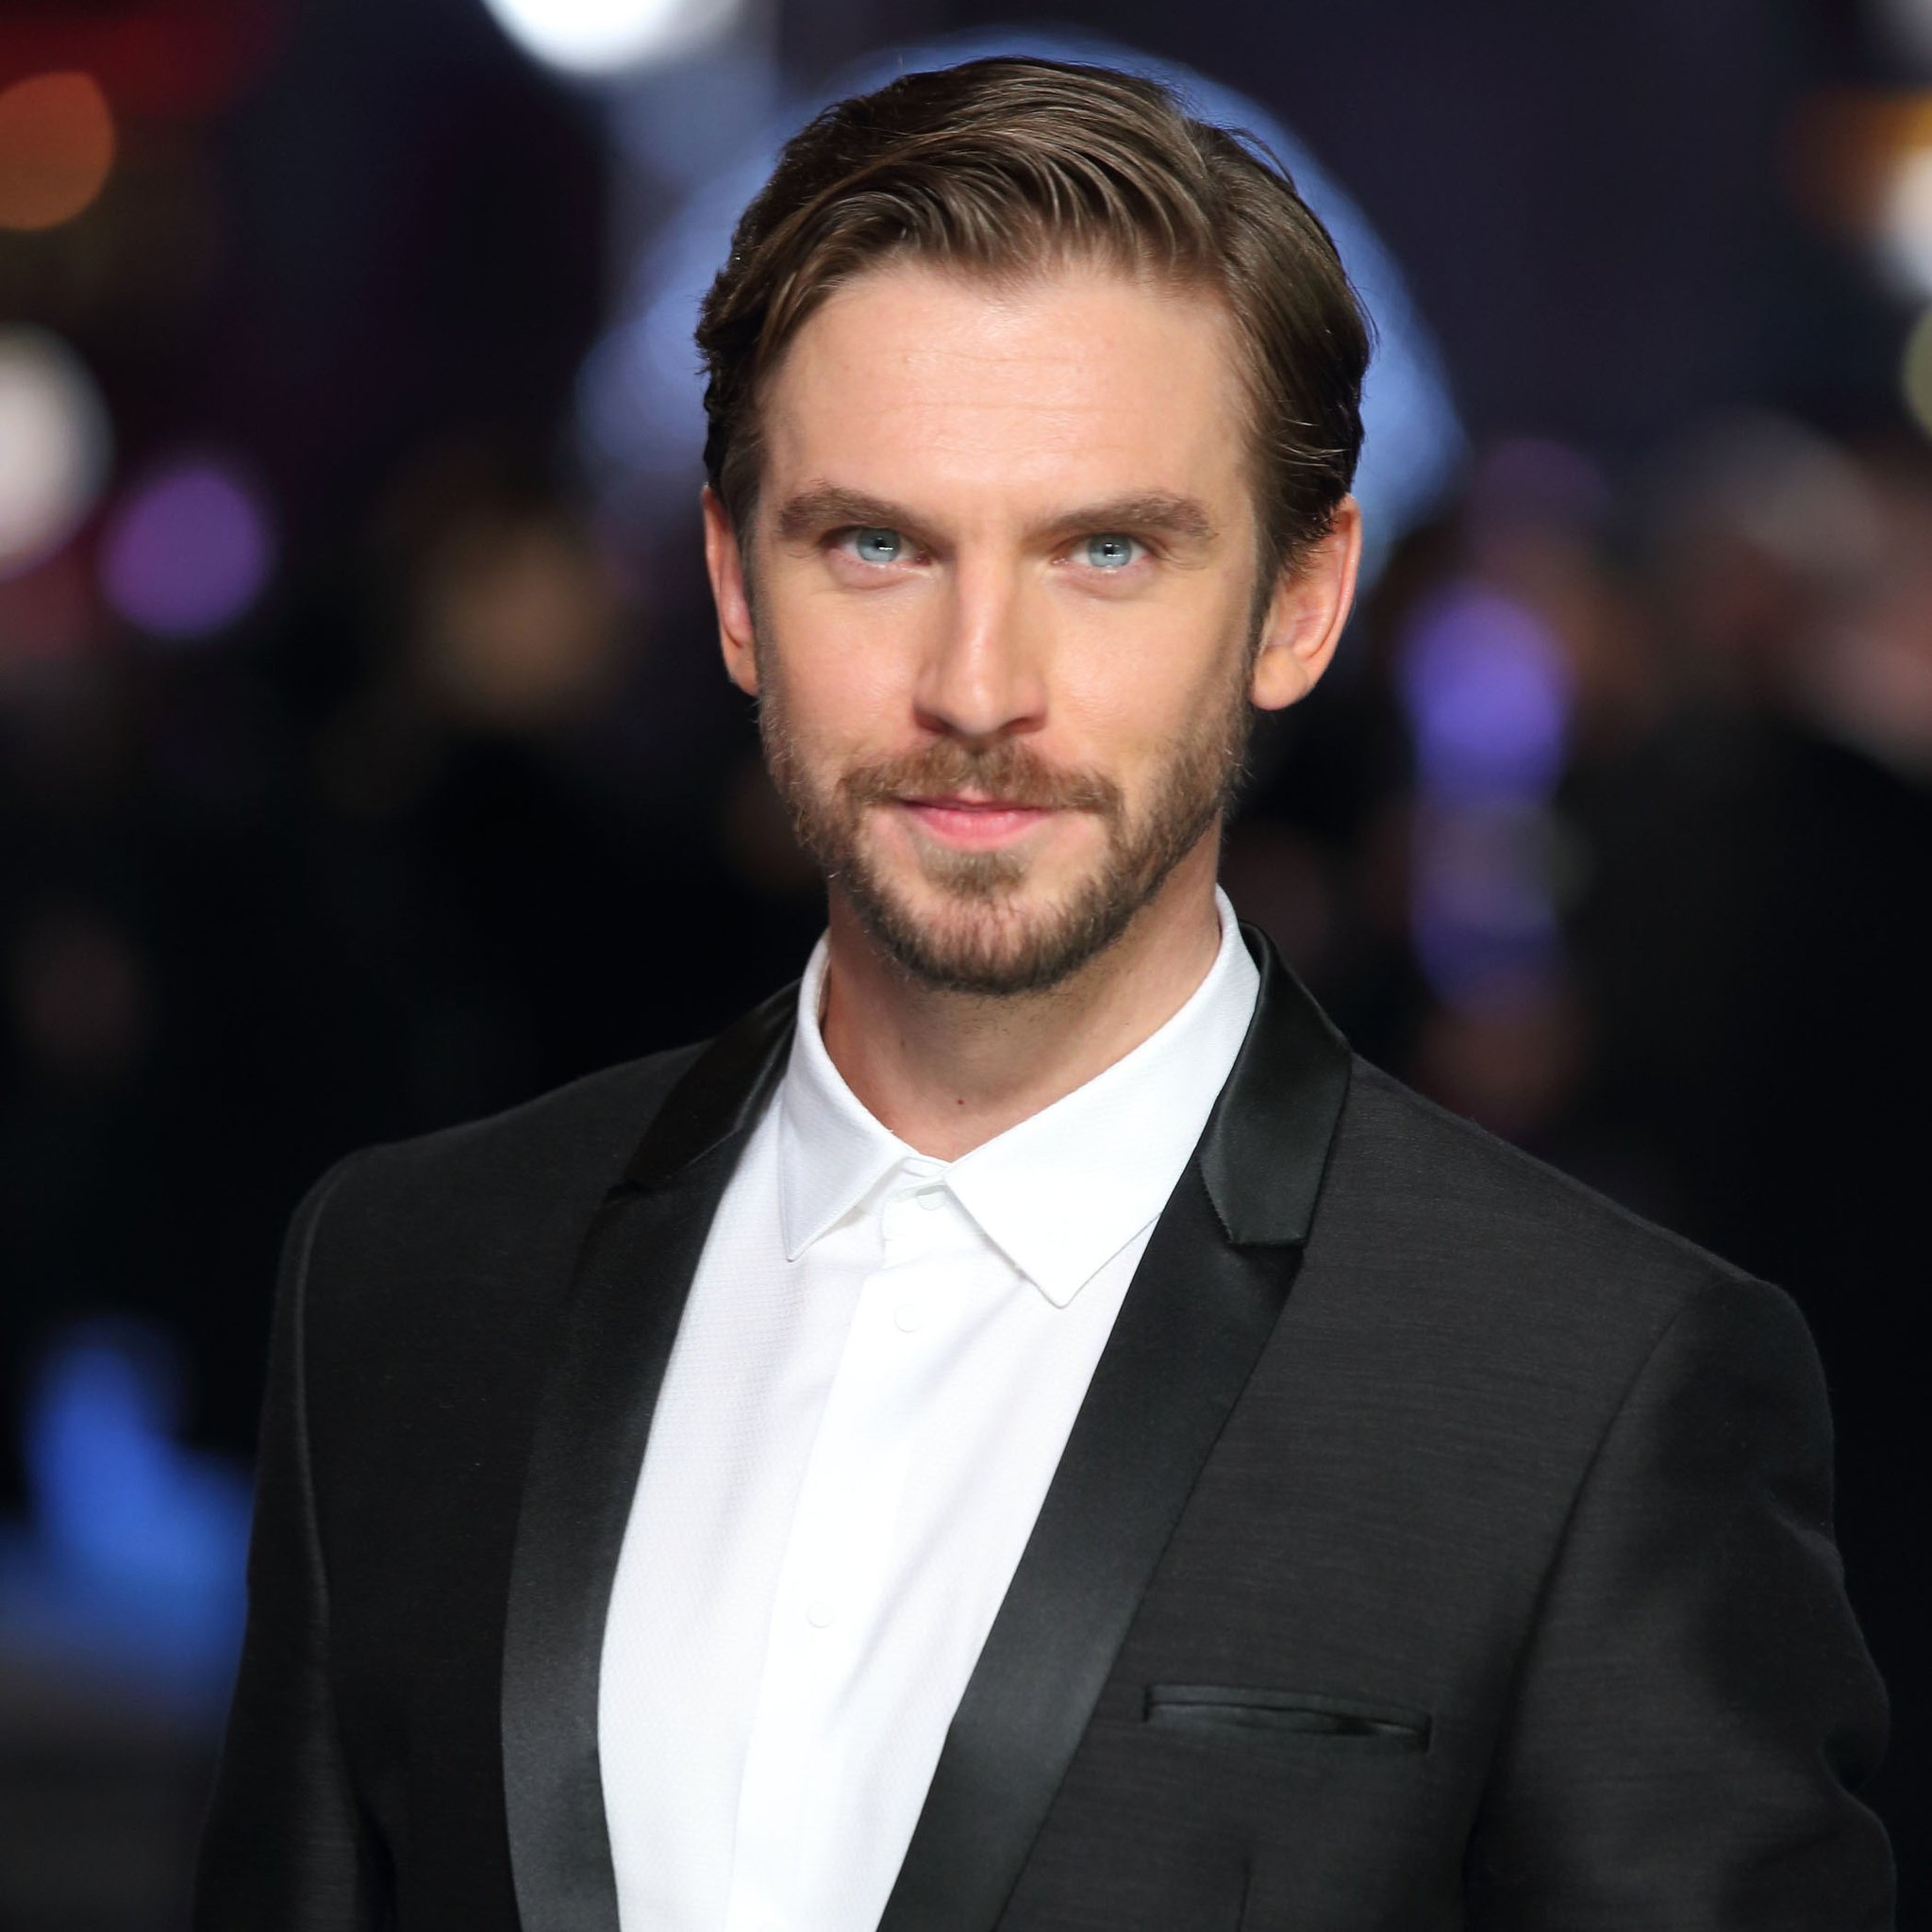 Dan Stevens (born 1982) nude (34 photo) Hot, 2017, braless